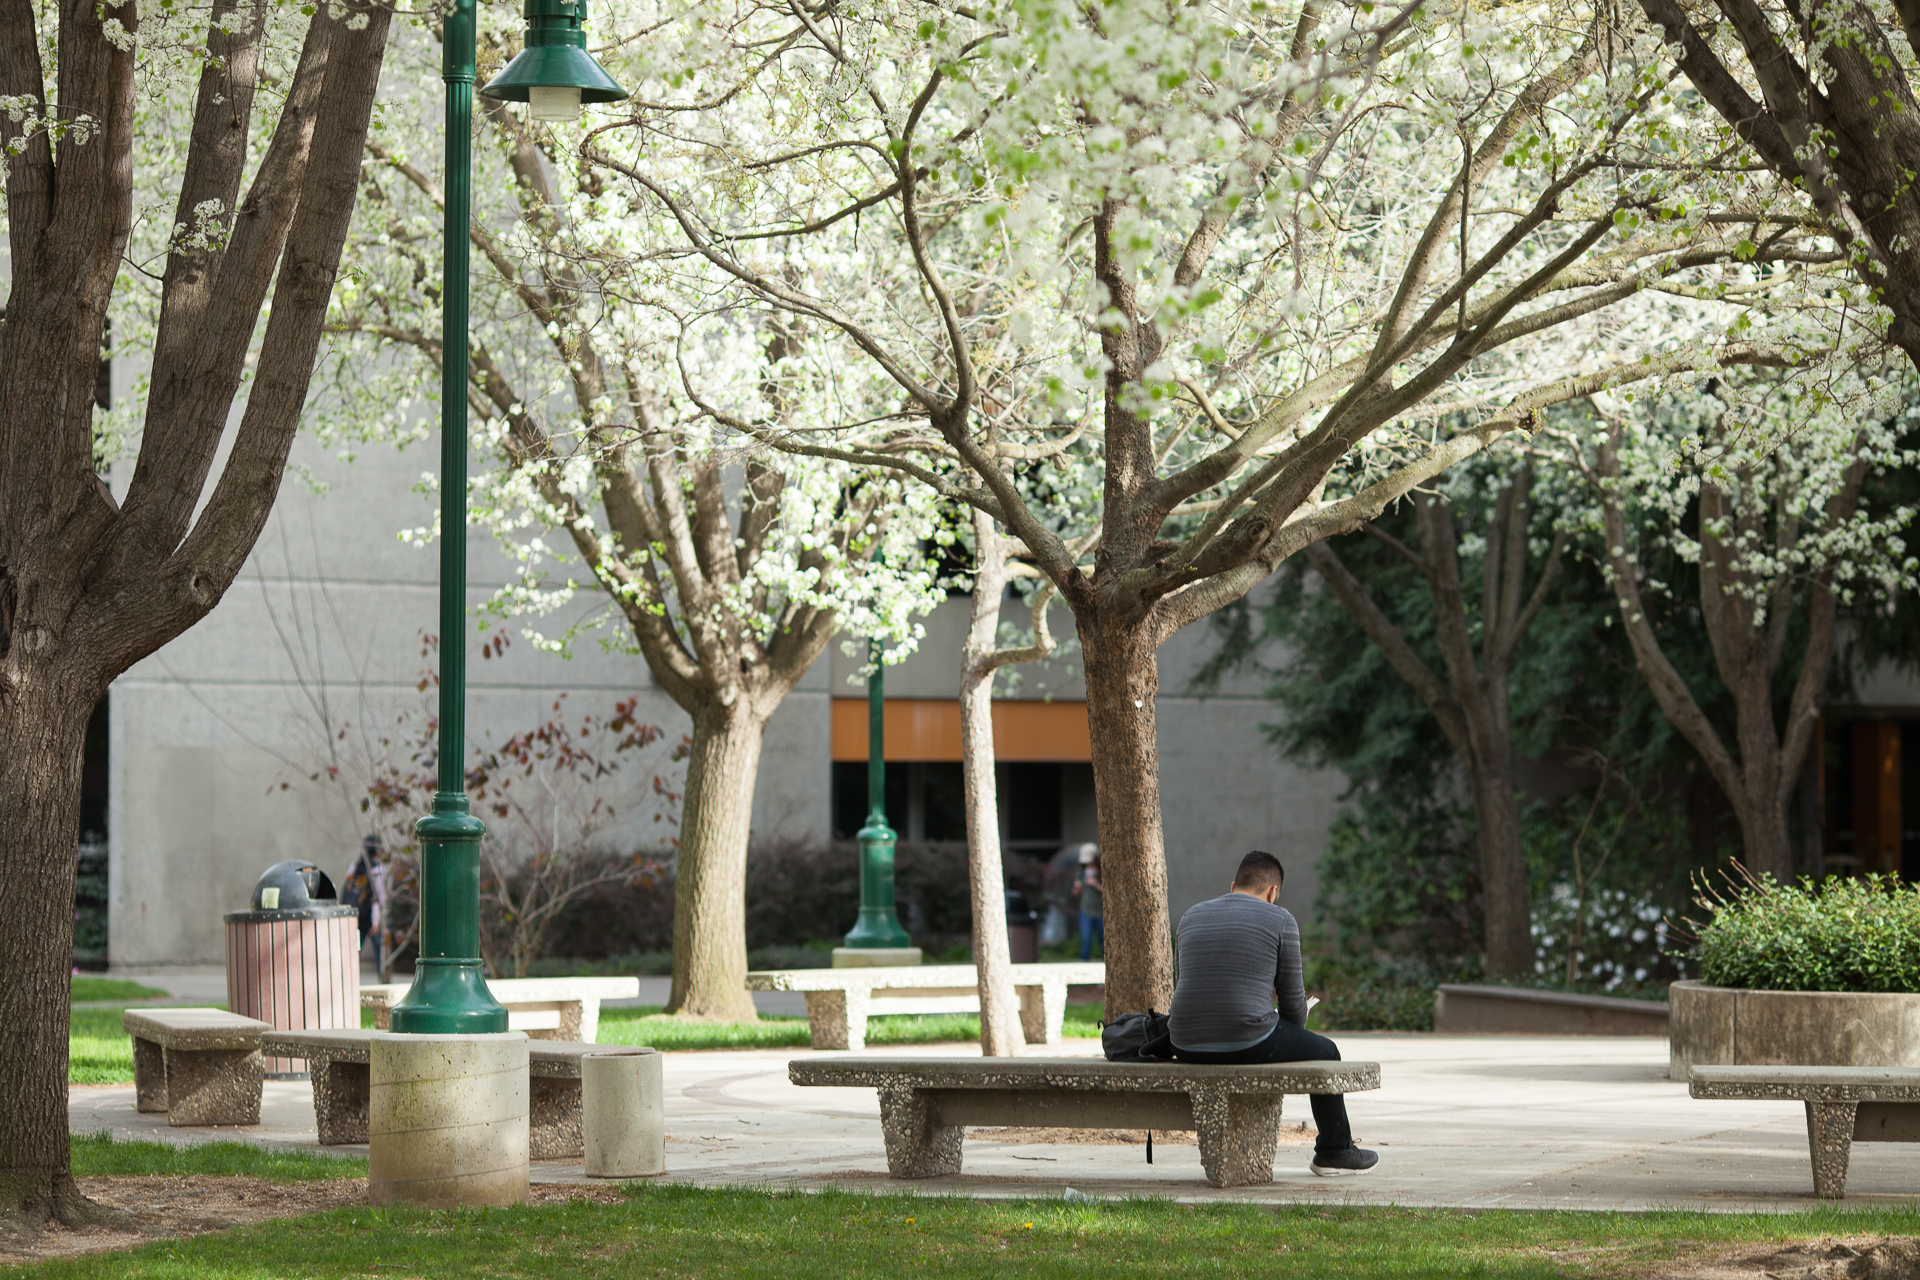 A man sits on a bench on the Sac State campus, surrounded by trees